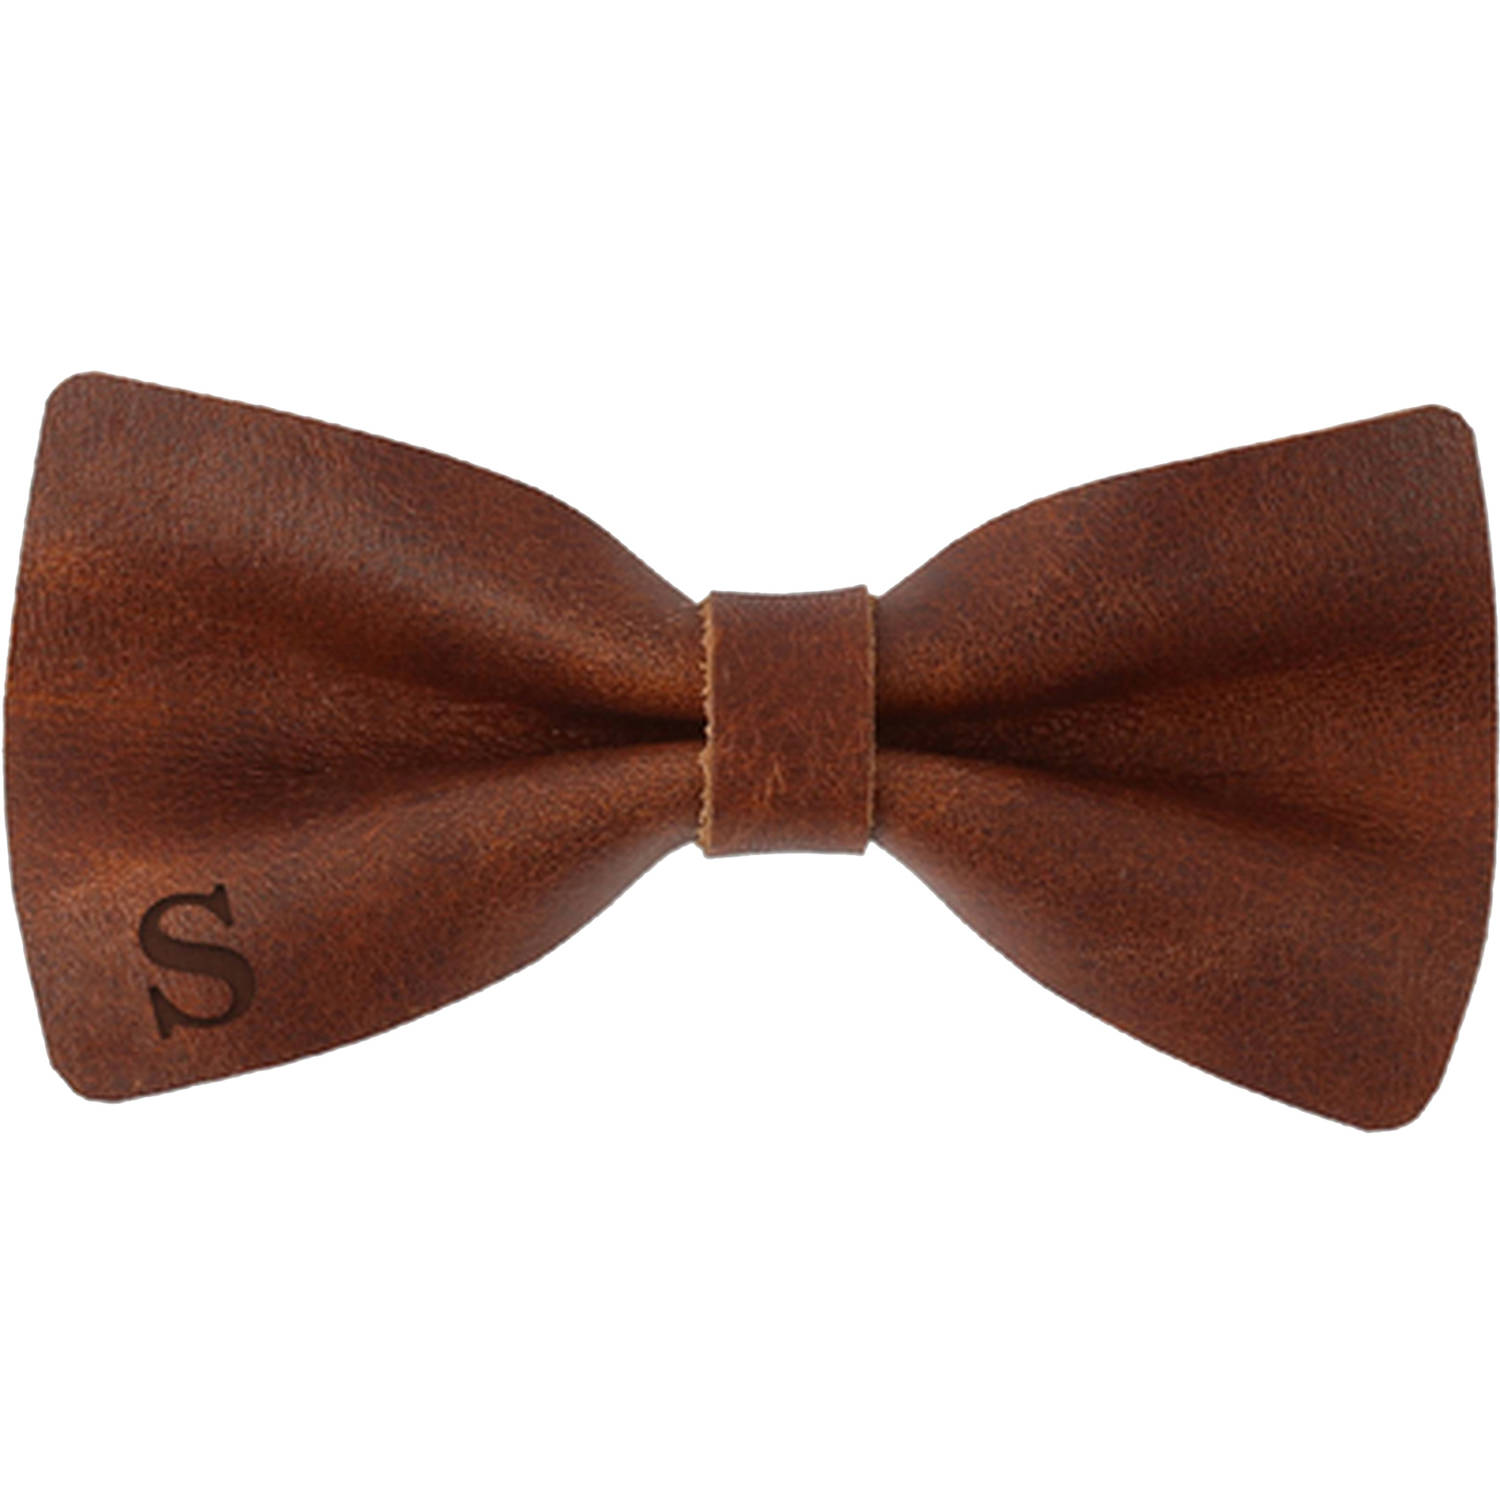 "Genuine Leather Customized Initial Bow Tie 4.5"" x 2.3"""